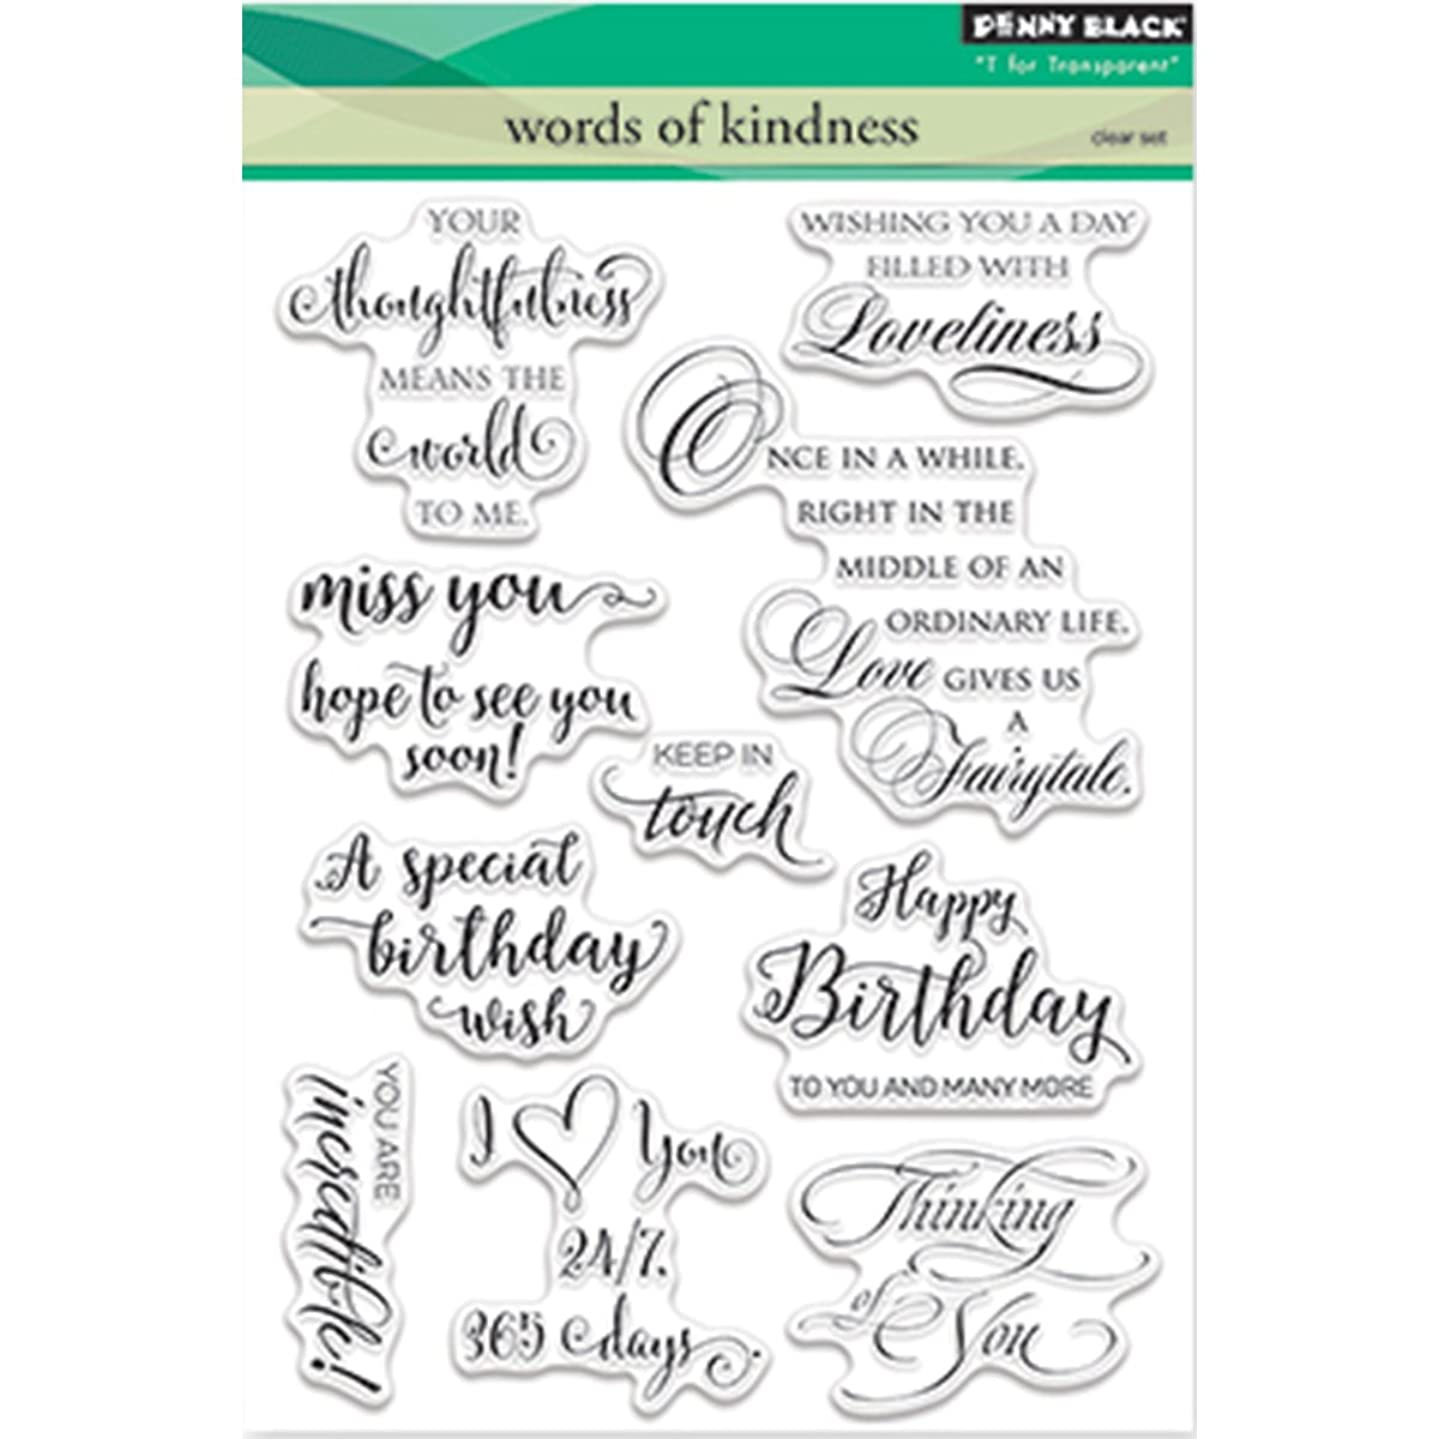 Penny Black Words of Kindness Clear Unmounted Rubber Stamp Set (30-353)